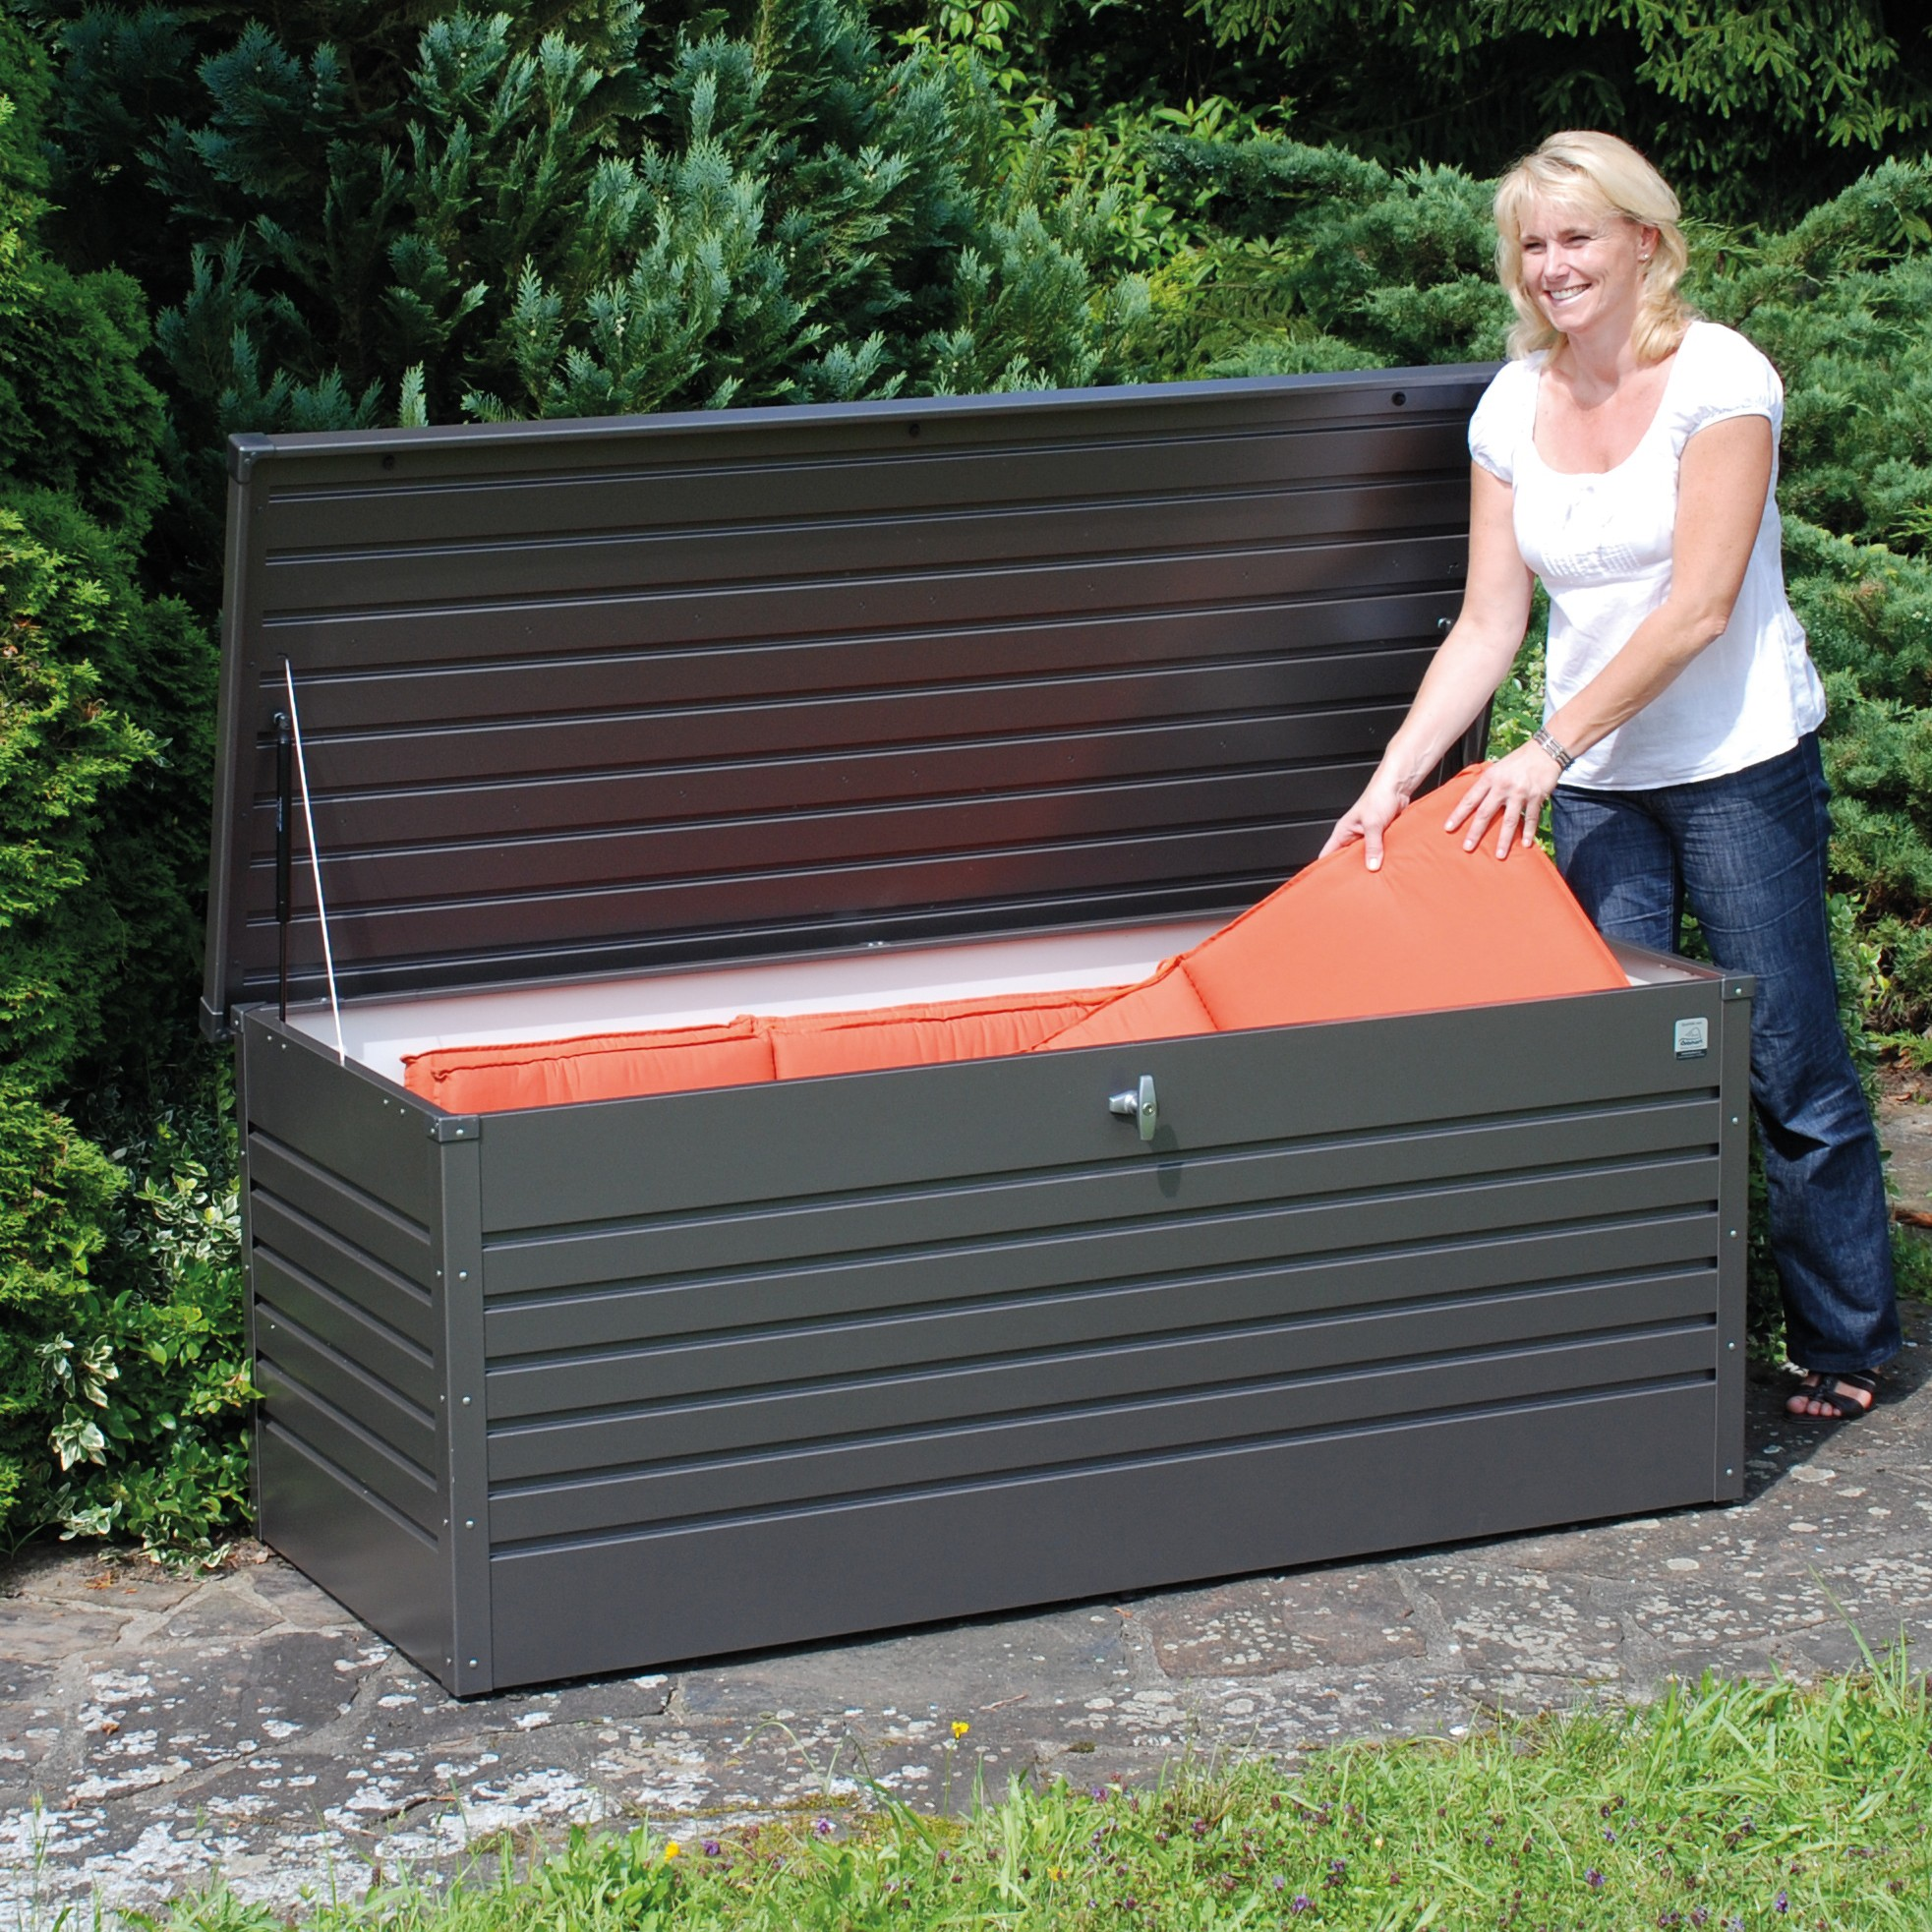 Kissenbox Outdoor Gartenbox Wasserdicht Alu Gartenbox Wasserdicht Alu With